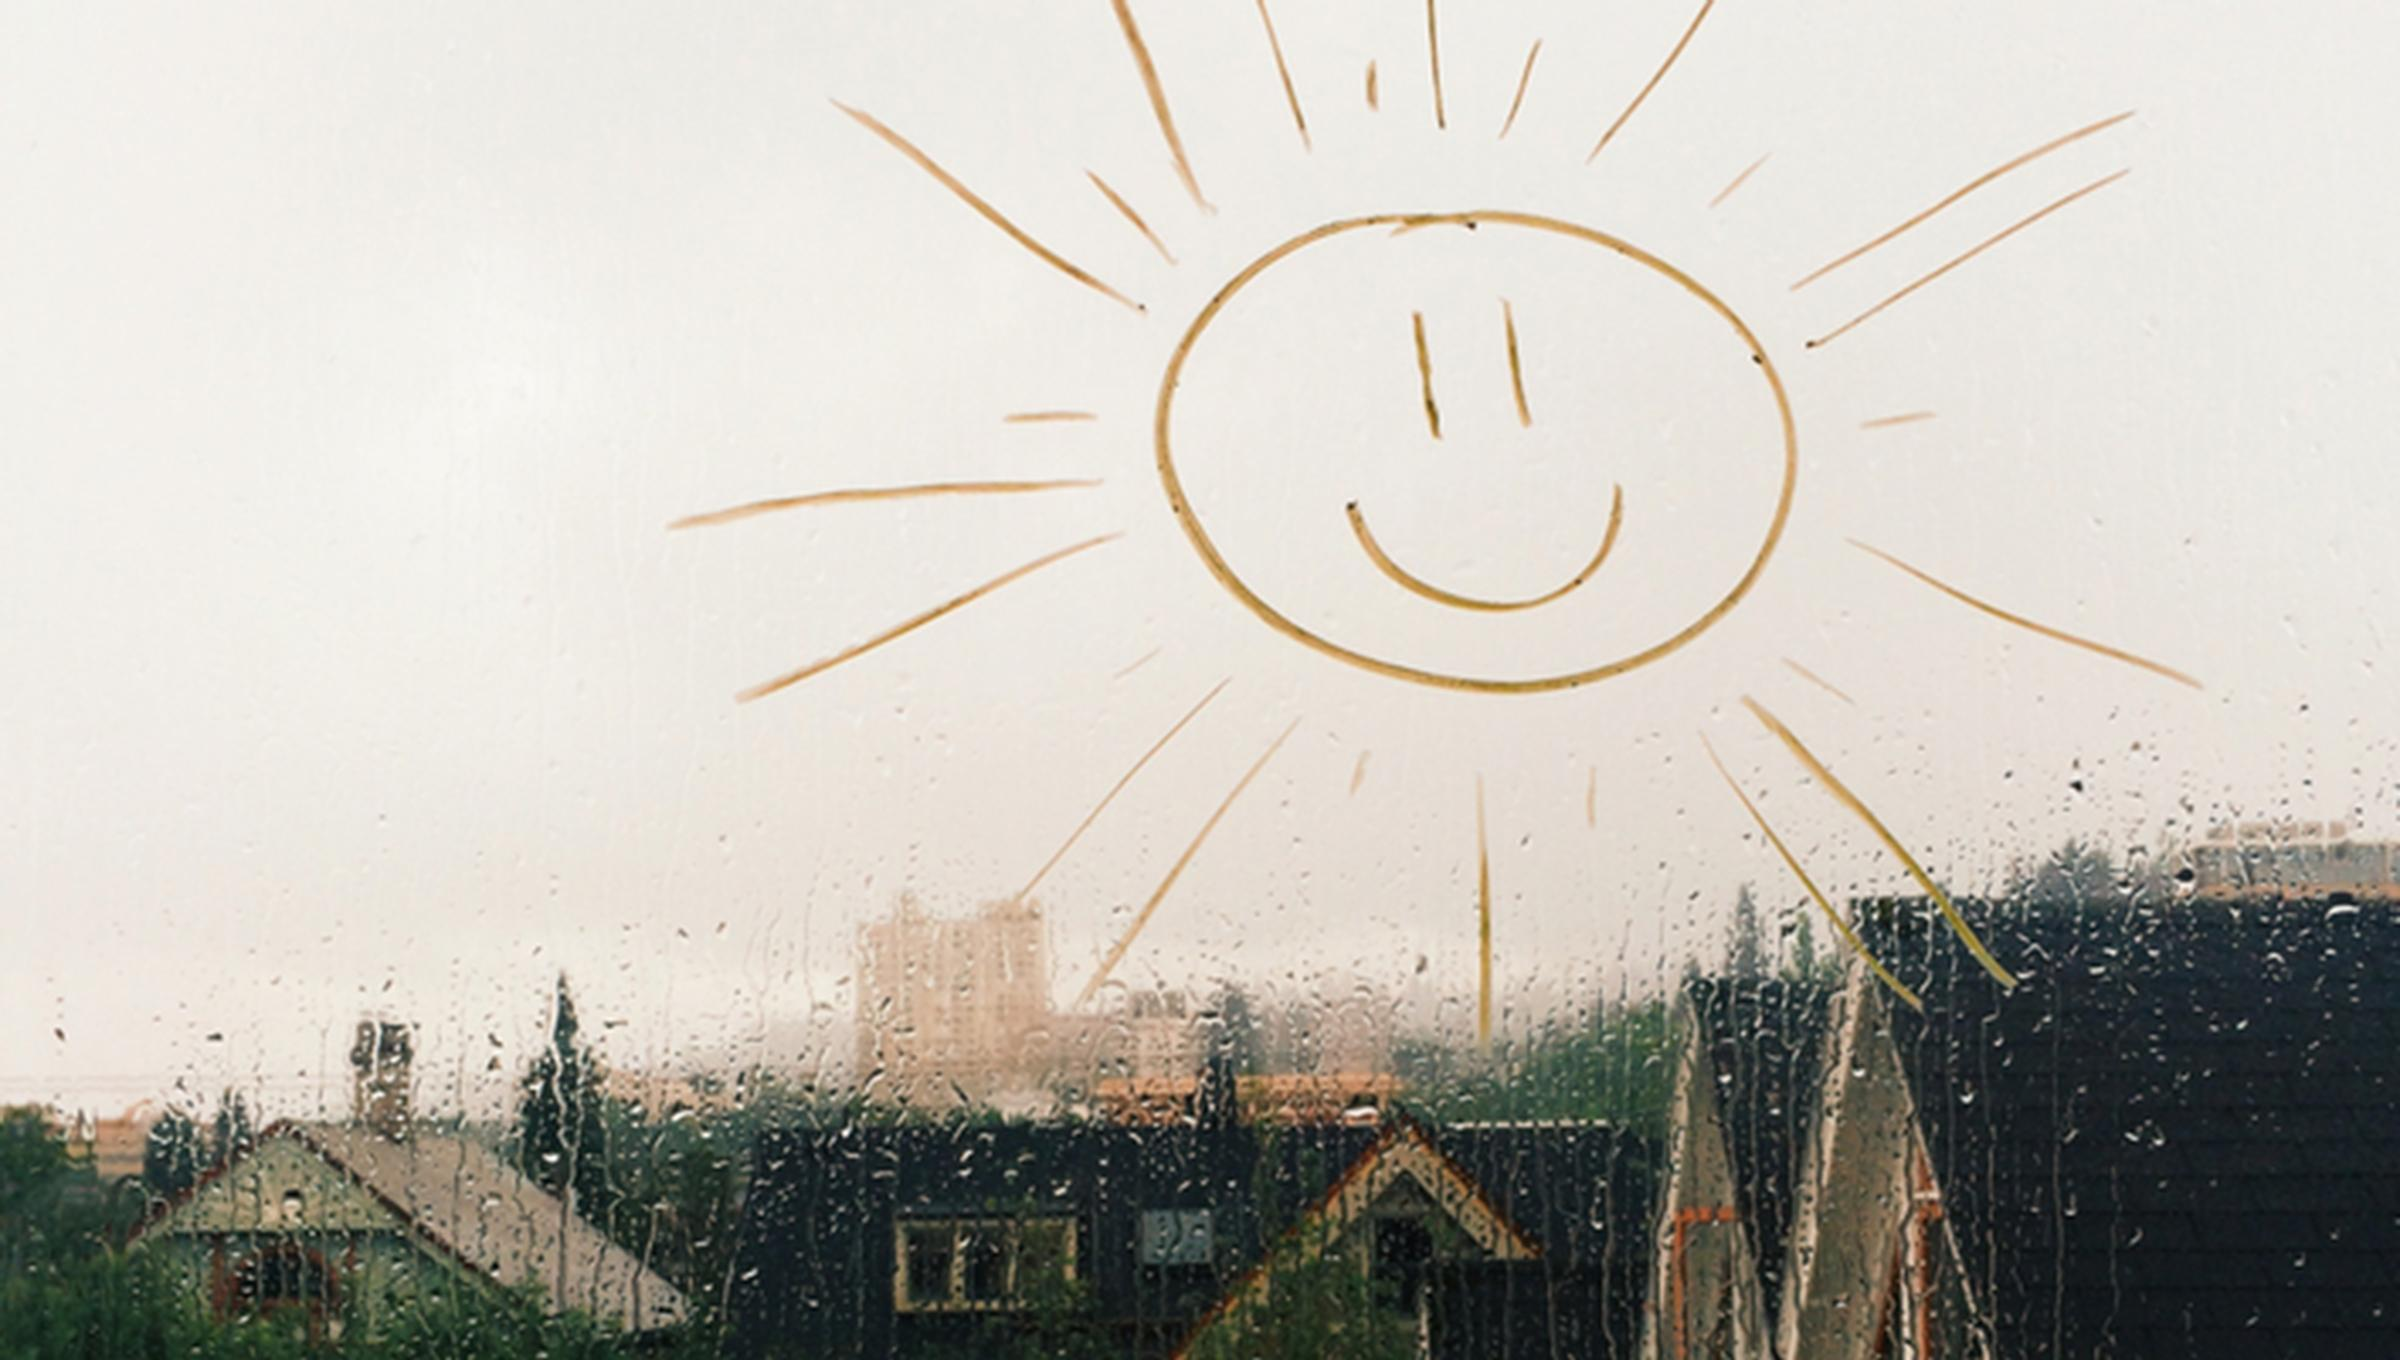 child's sunshine drawing on a rain covered window